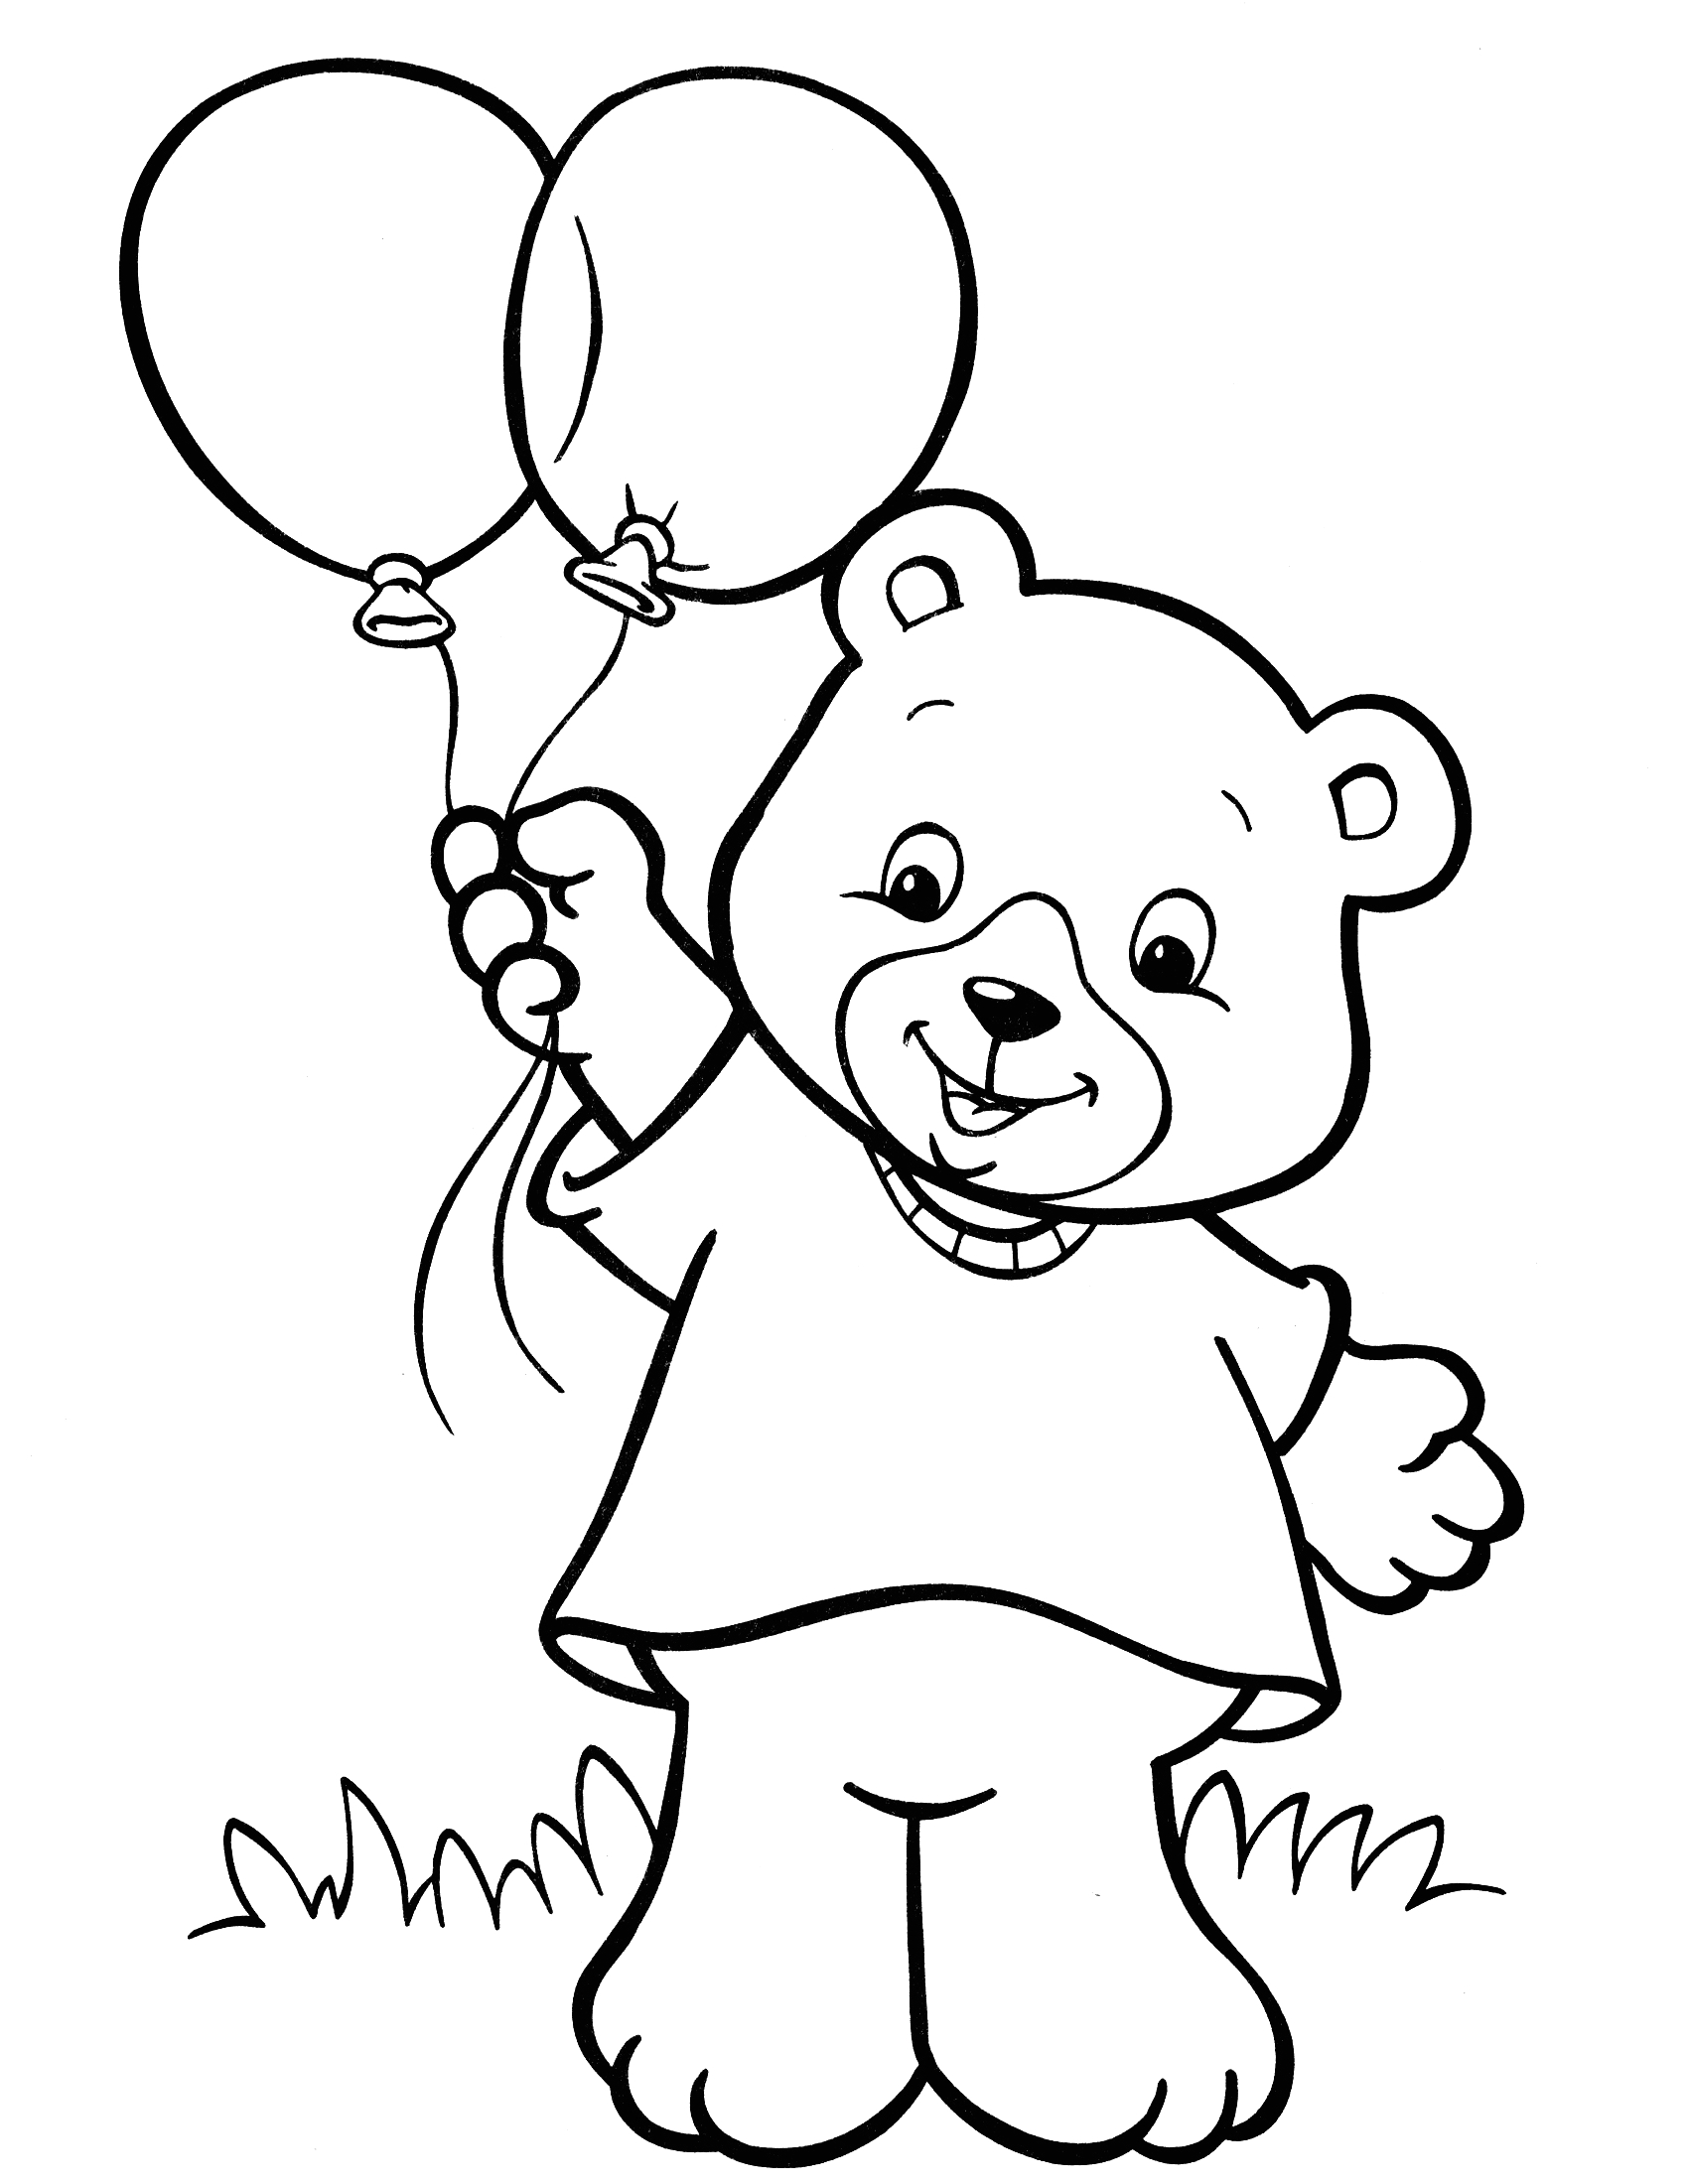 Printable Coloring Pages for Two Year Olds Coloring Books for 2 Year Olds Disney Coloring Pages